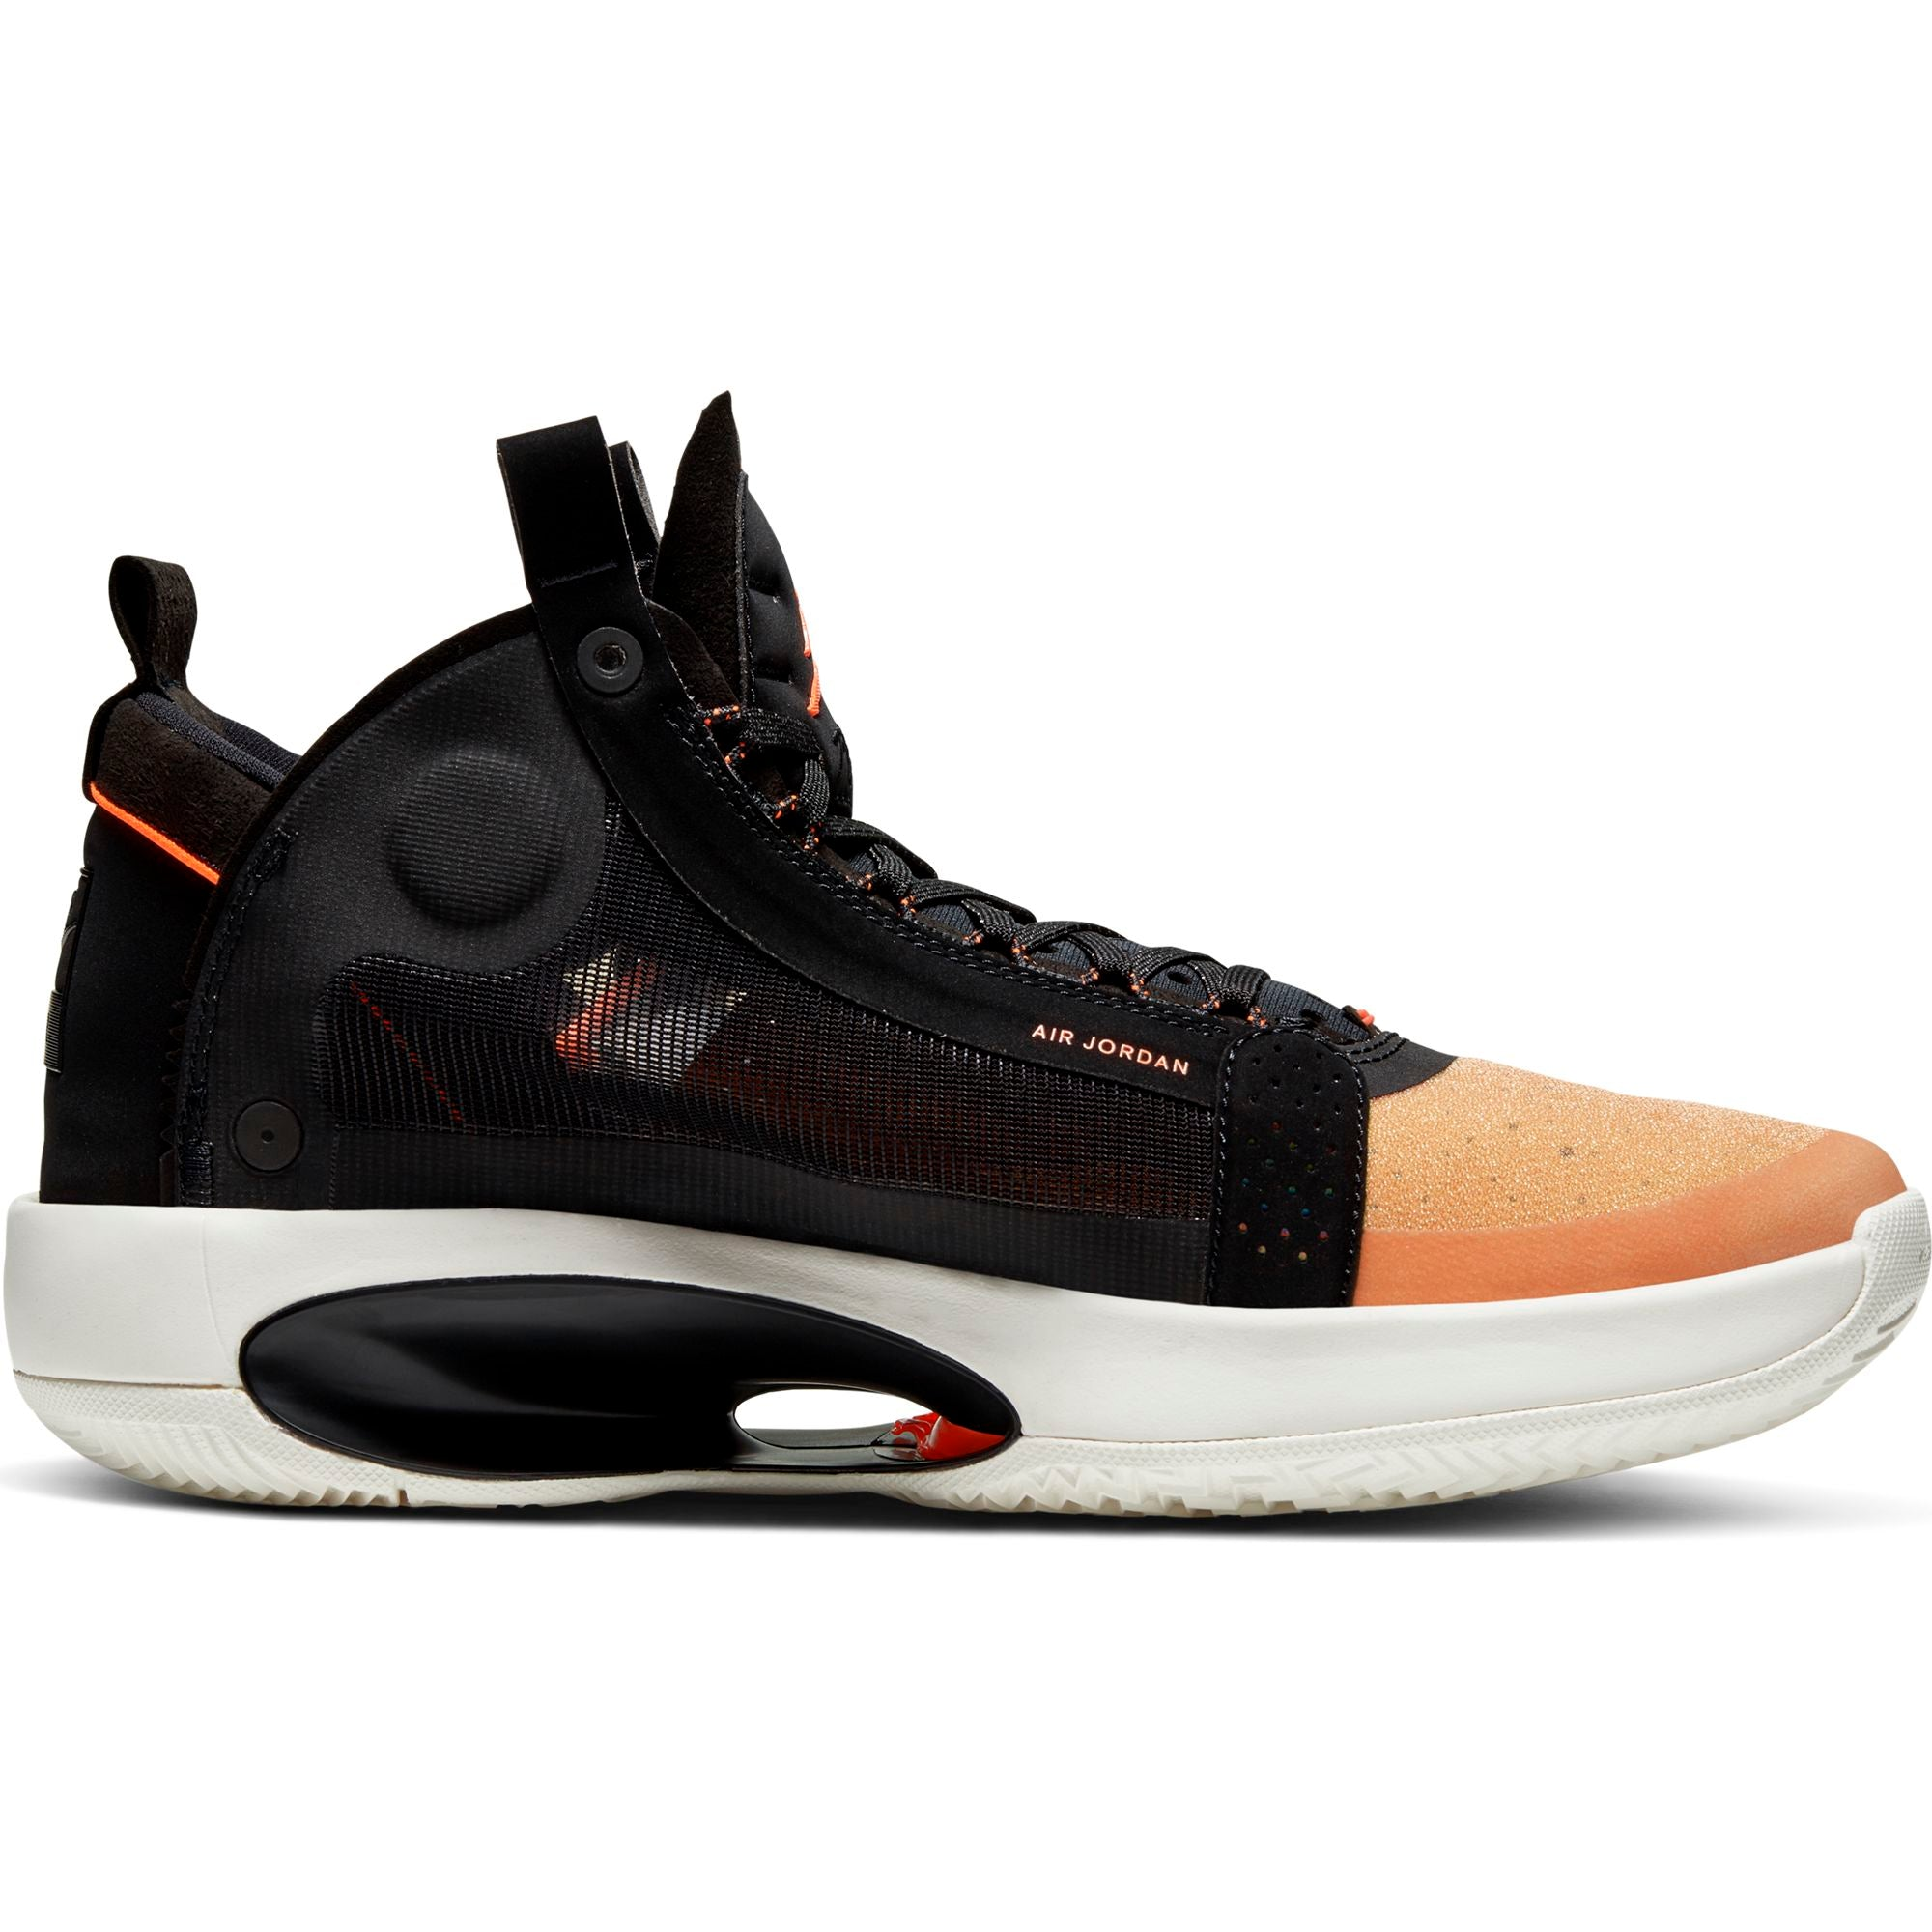 Nike Jordan Air XXXIV Basketball Boot/shoe - Amber Rise/Metallic Silver/Black/Sail